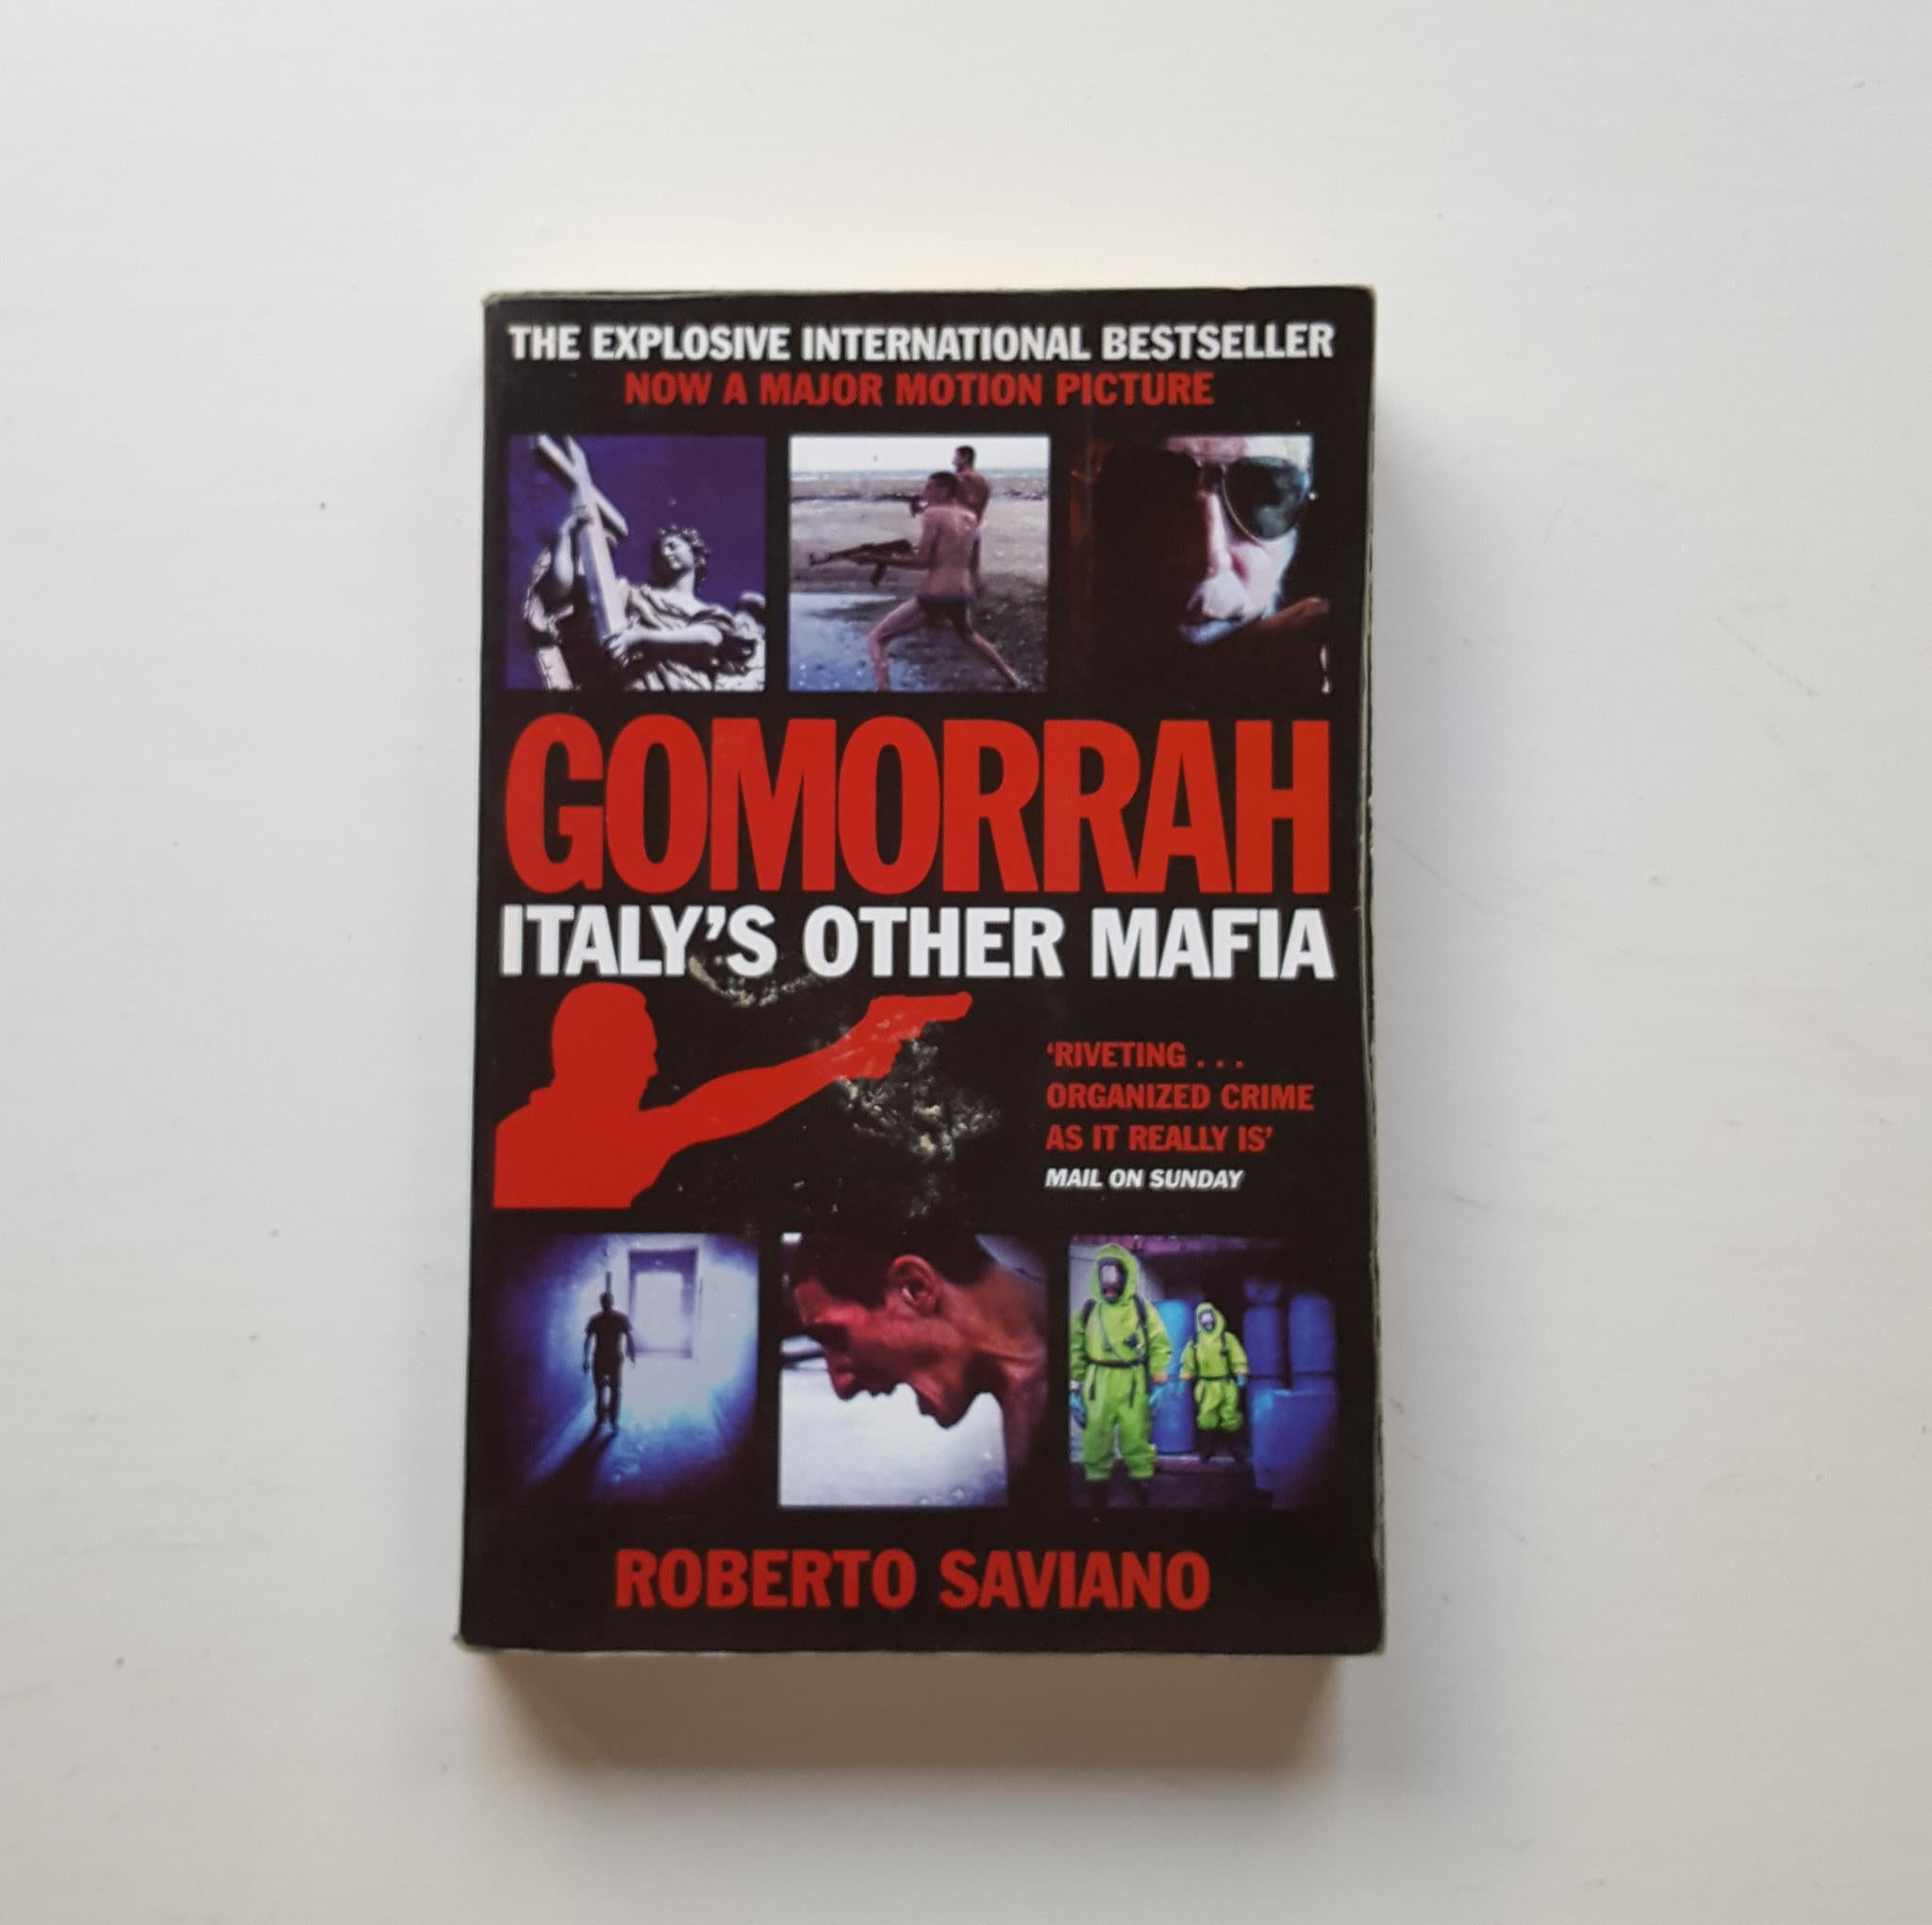 Gomorrah - Italy's Other Mafia by Roberto Saviano